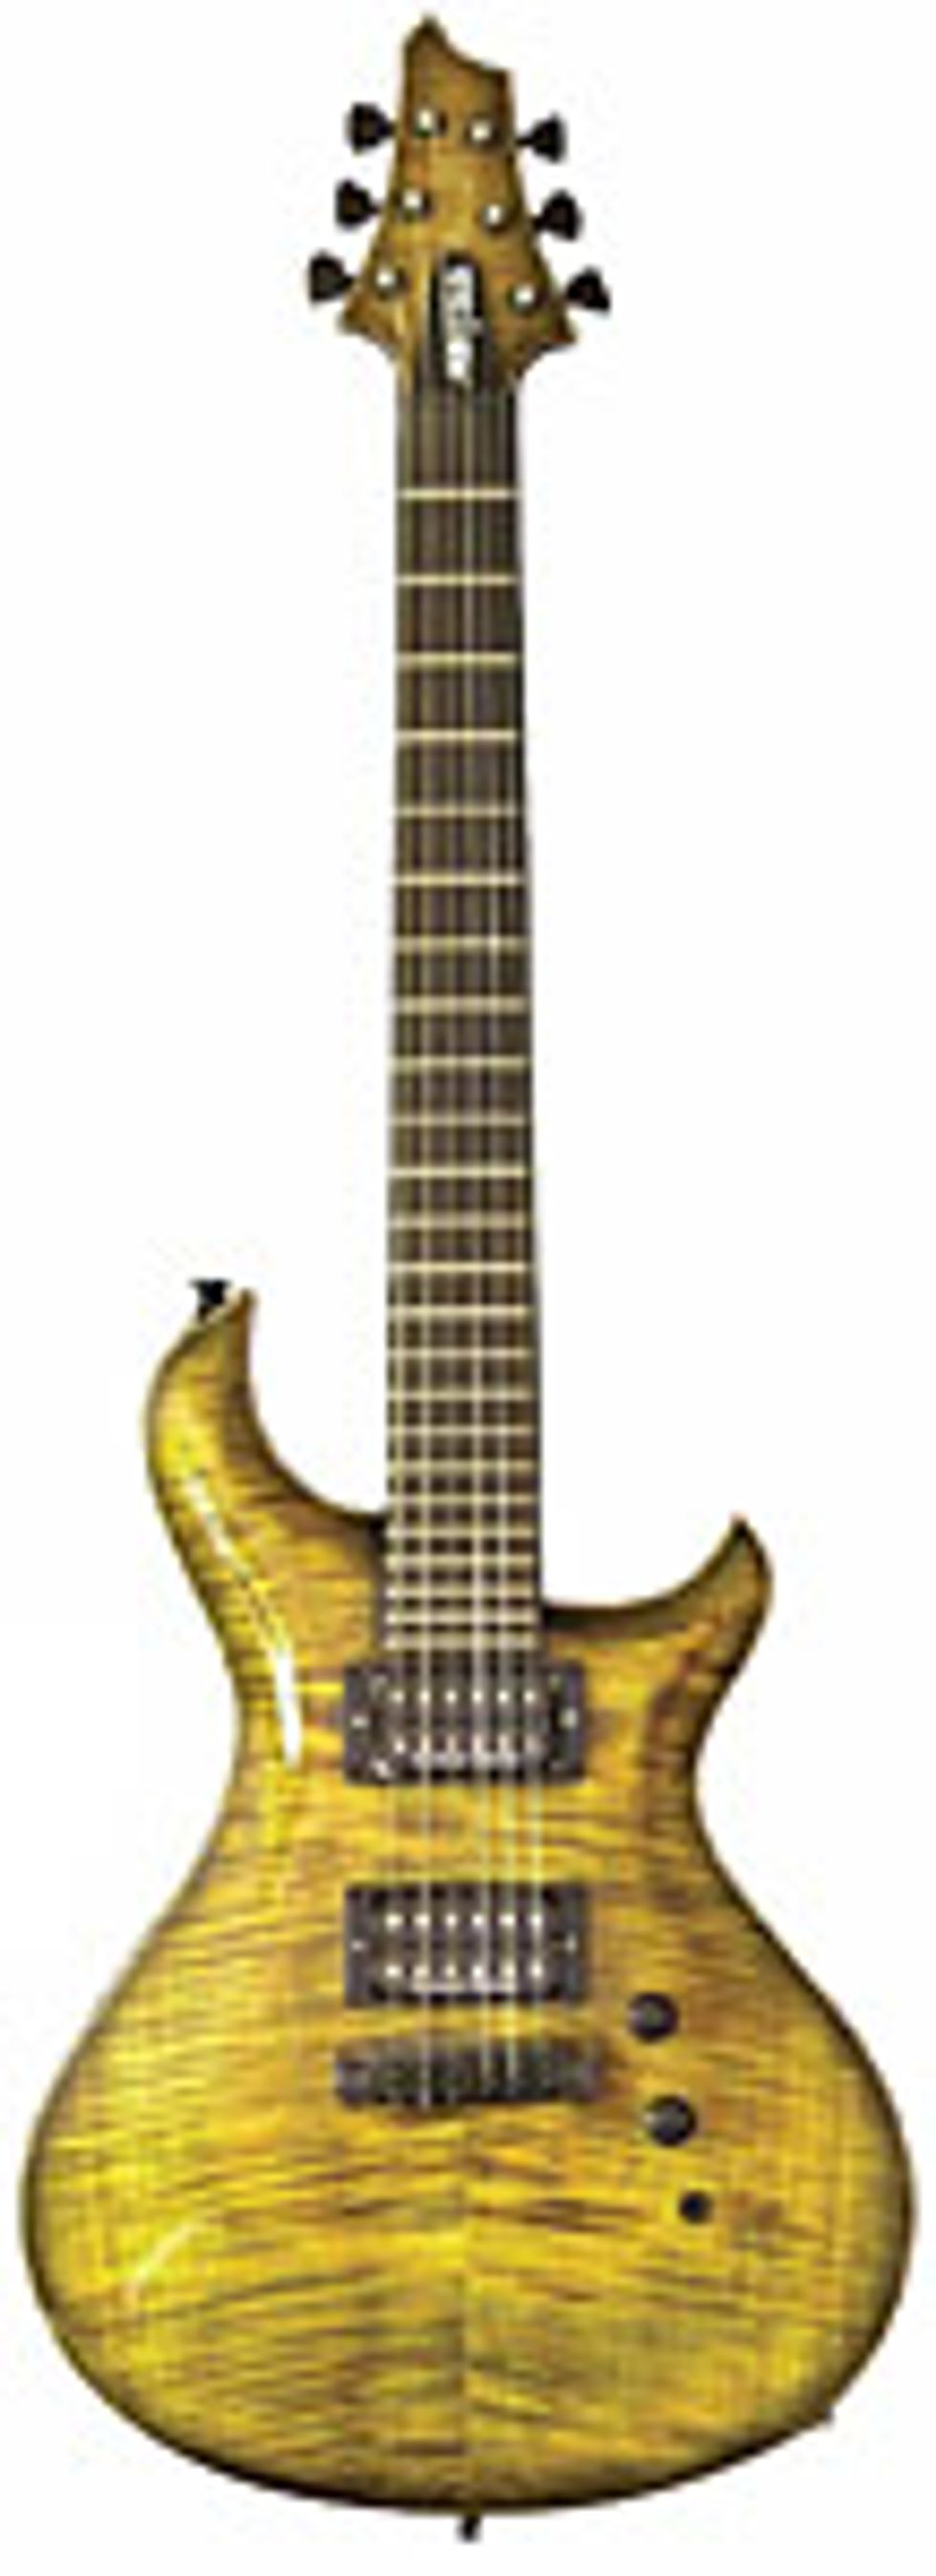 Abyss Standard Electric Guitar